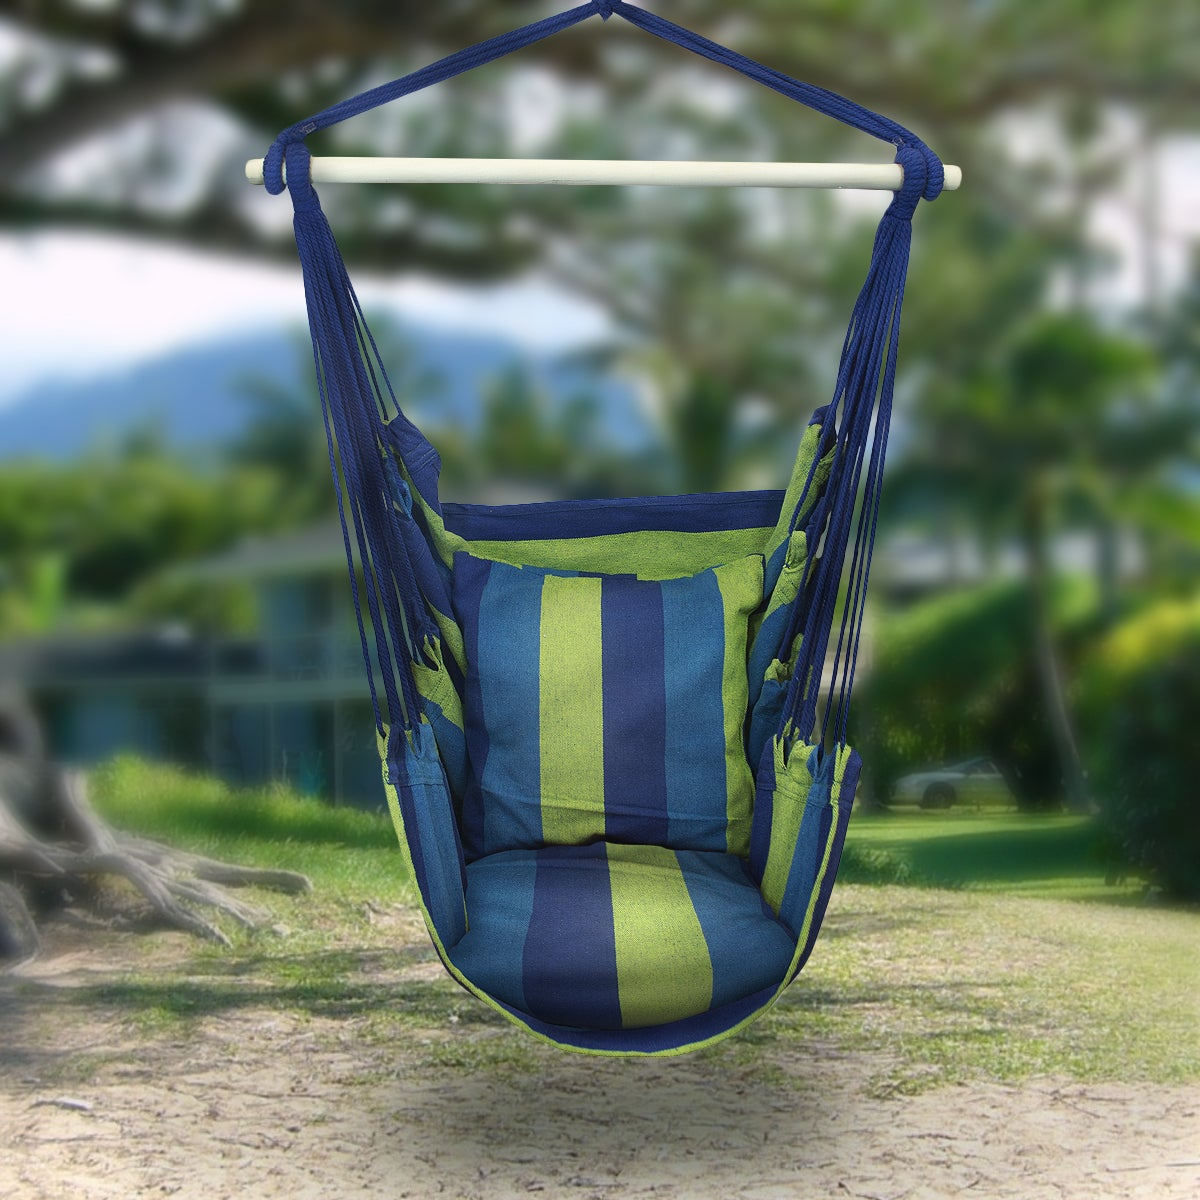 Shop Sorbus Hanging Rope Hammock Chair Swing Seat   Free Shipping Today    Overstock.com   10364876